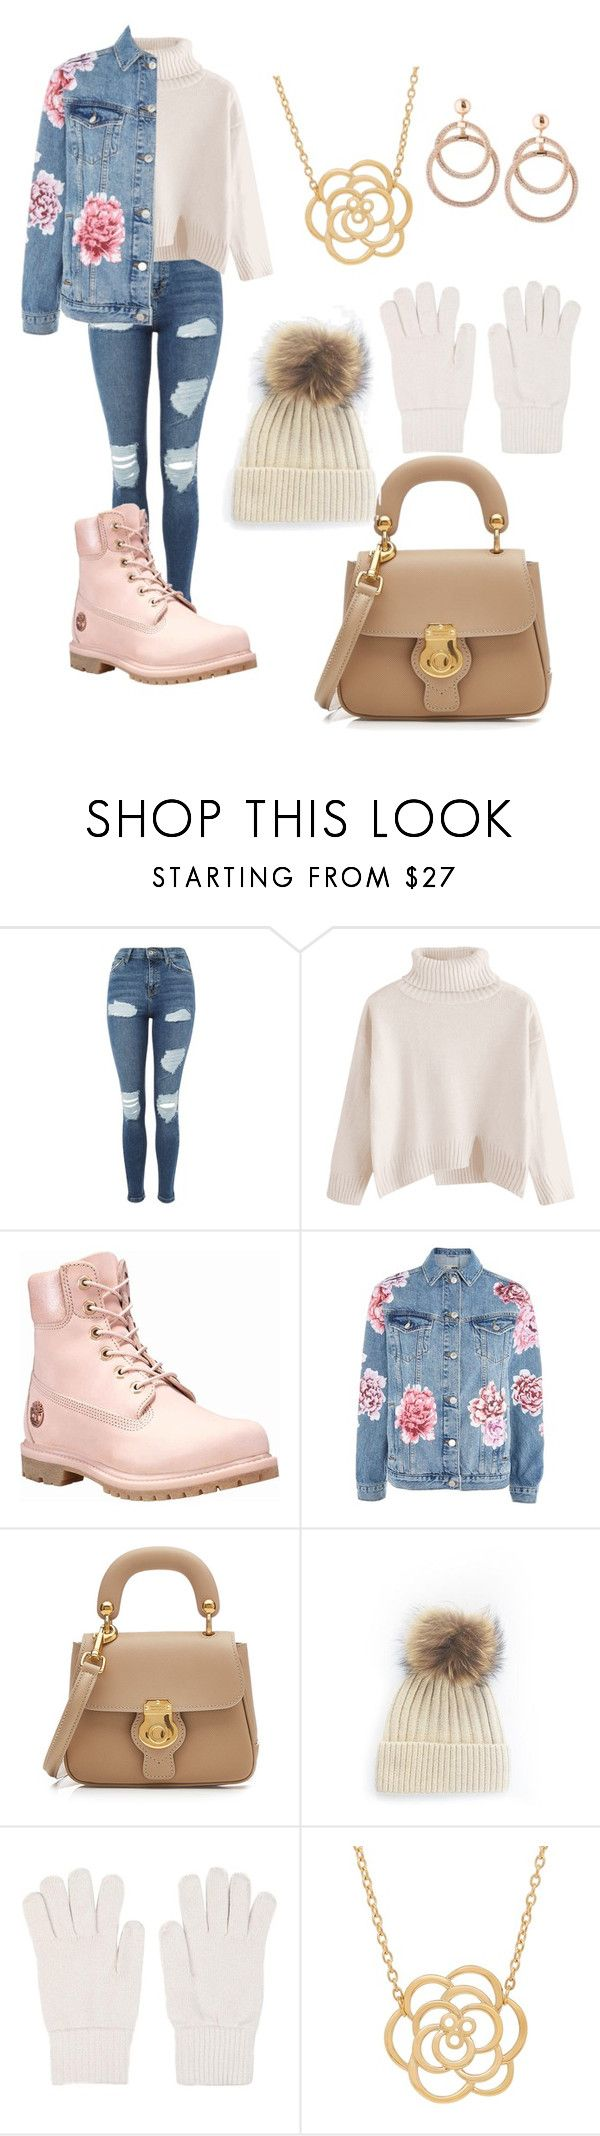 Untitled #23 by lunaandsolis on Polyvore featuring Topshop, Timberland, Burberry, Lord & Taylor and Gentryportofino